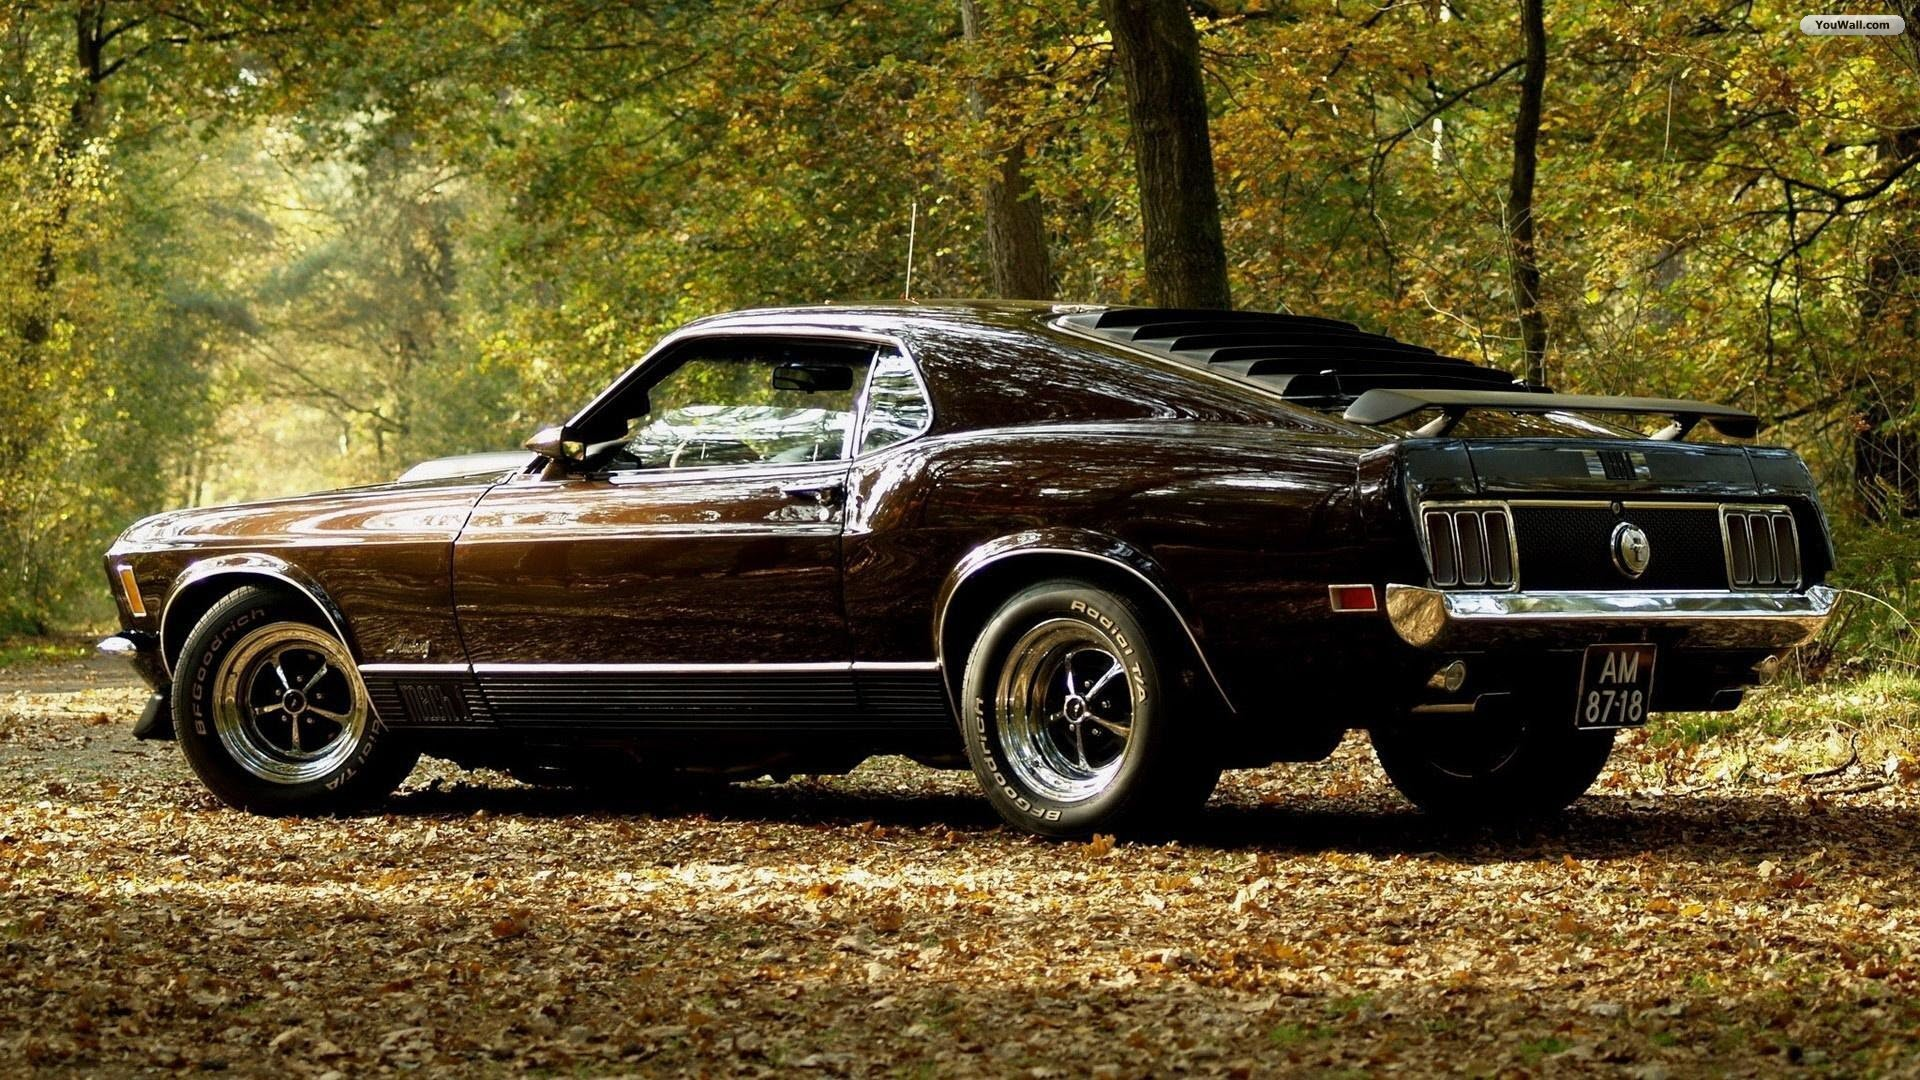 71 Old Muscle Cars Hd Wallpapers On Wallpapersafari